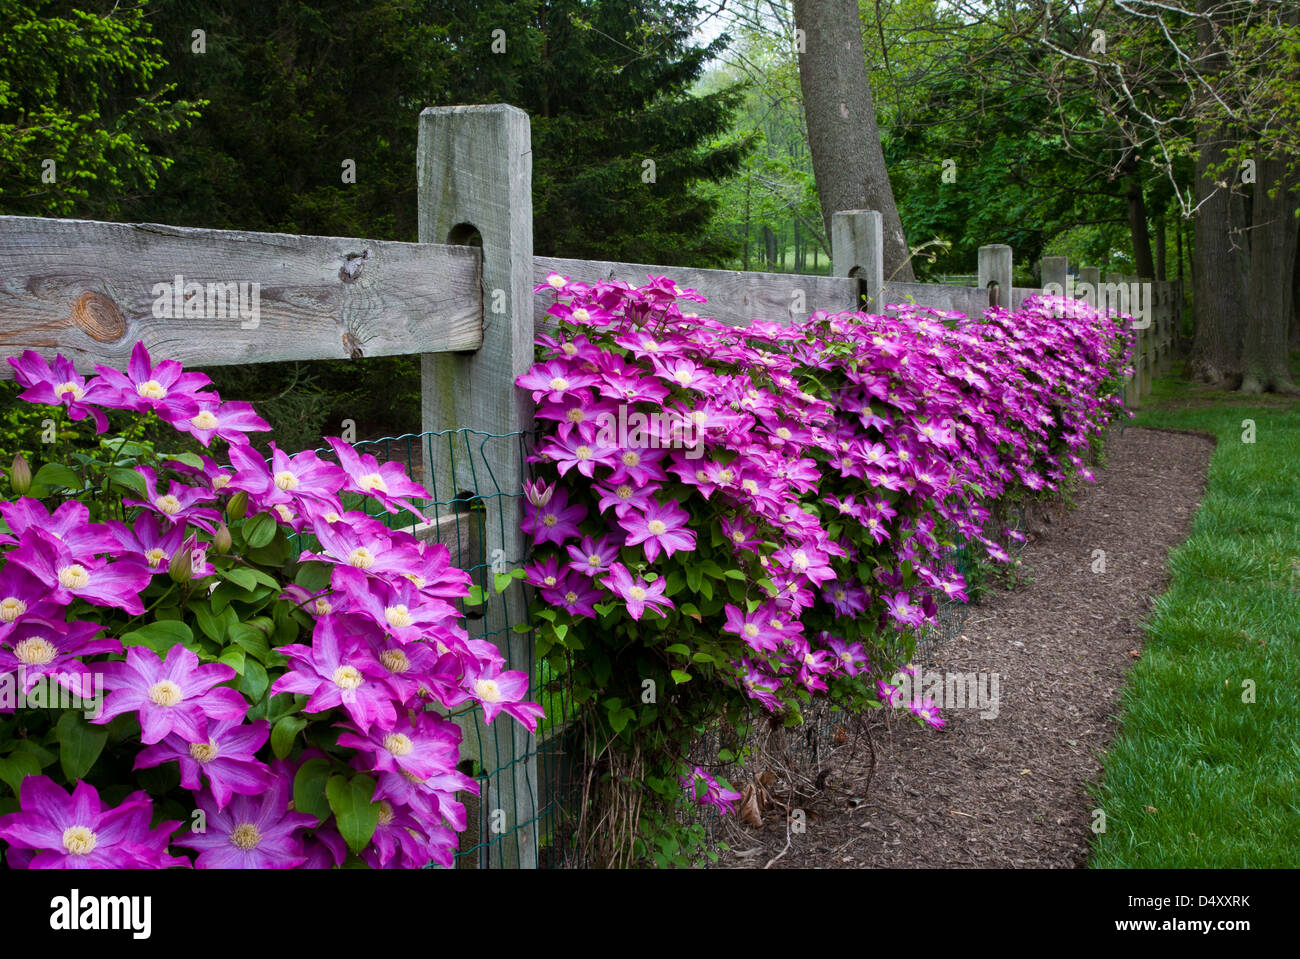 colorful close up row of pink clematis vines climing on a wooden fence in a backyard new jersey usa